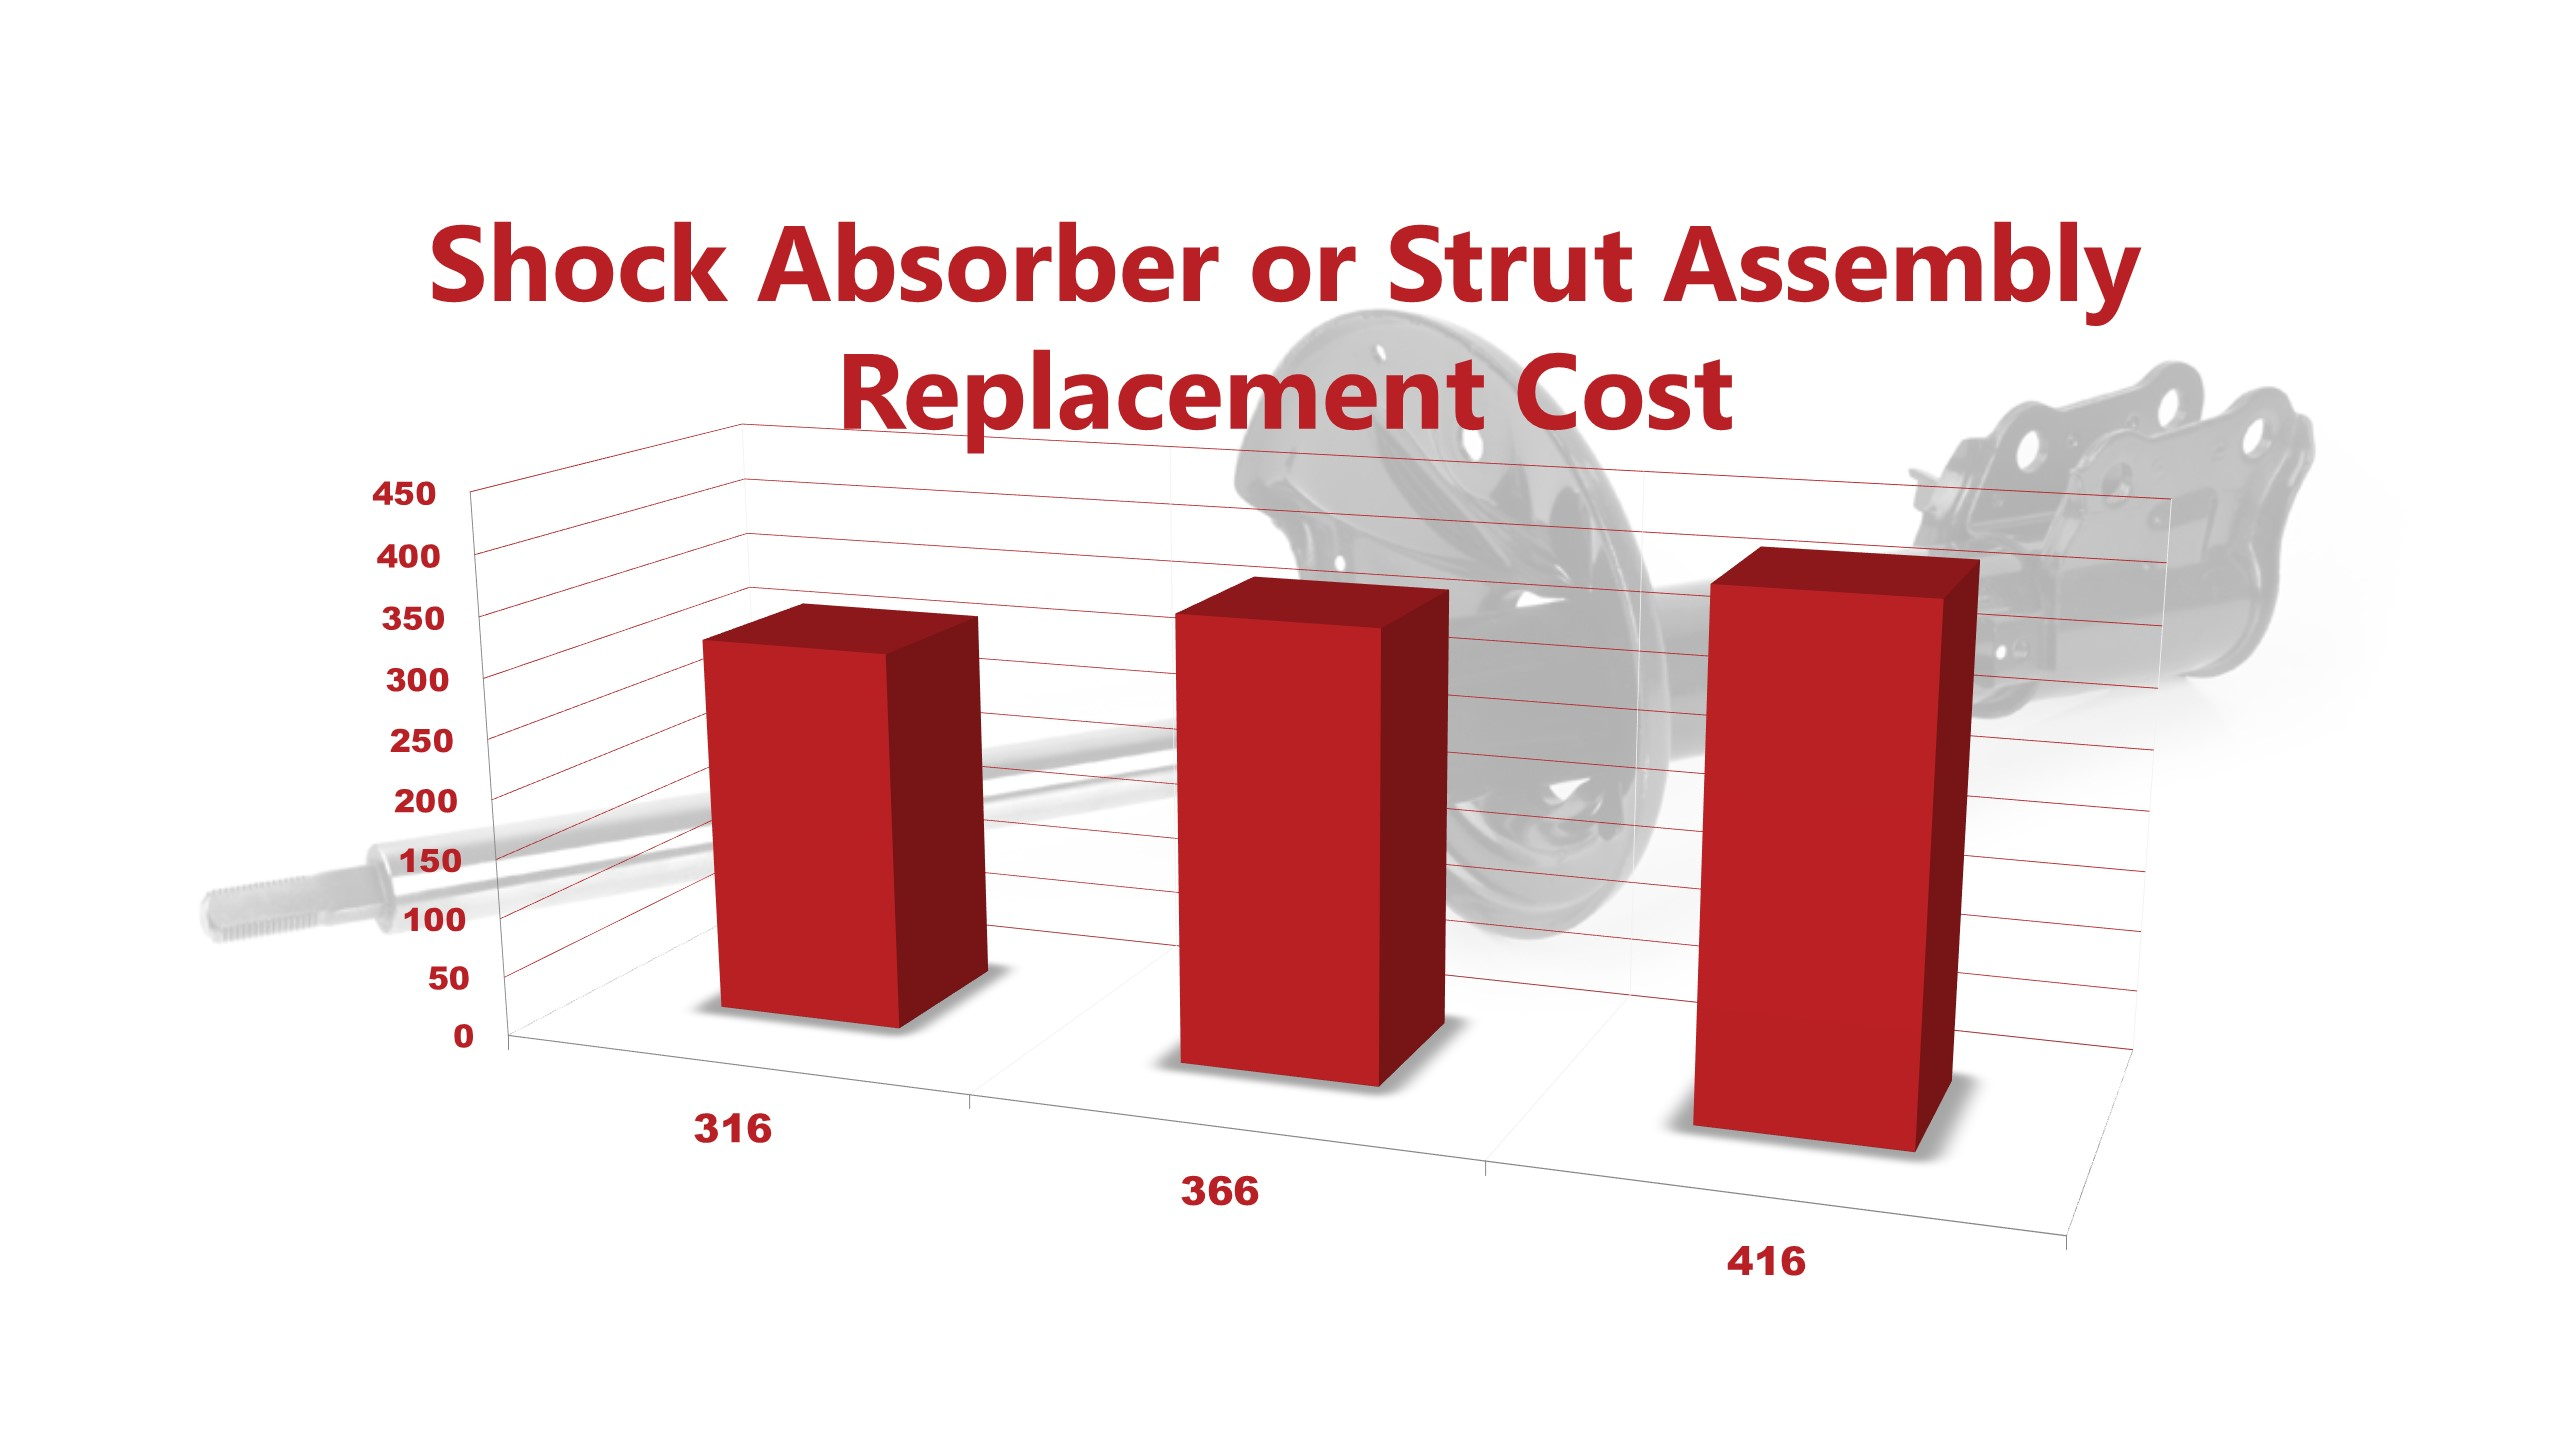 hock Absorber or Strut Assembly Replacement Cost